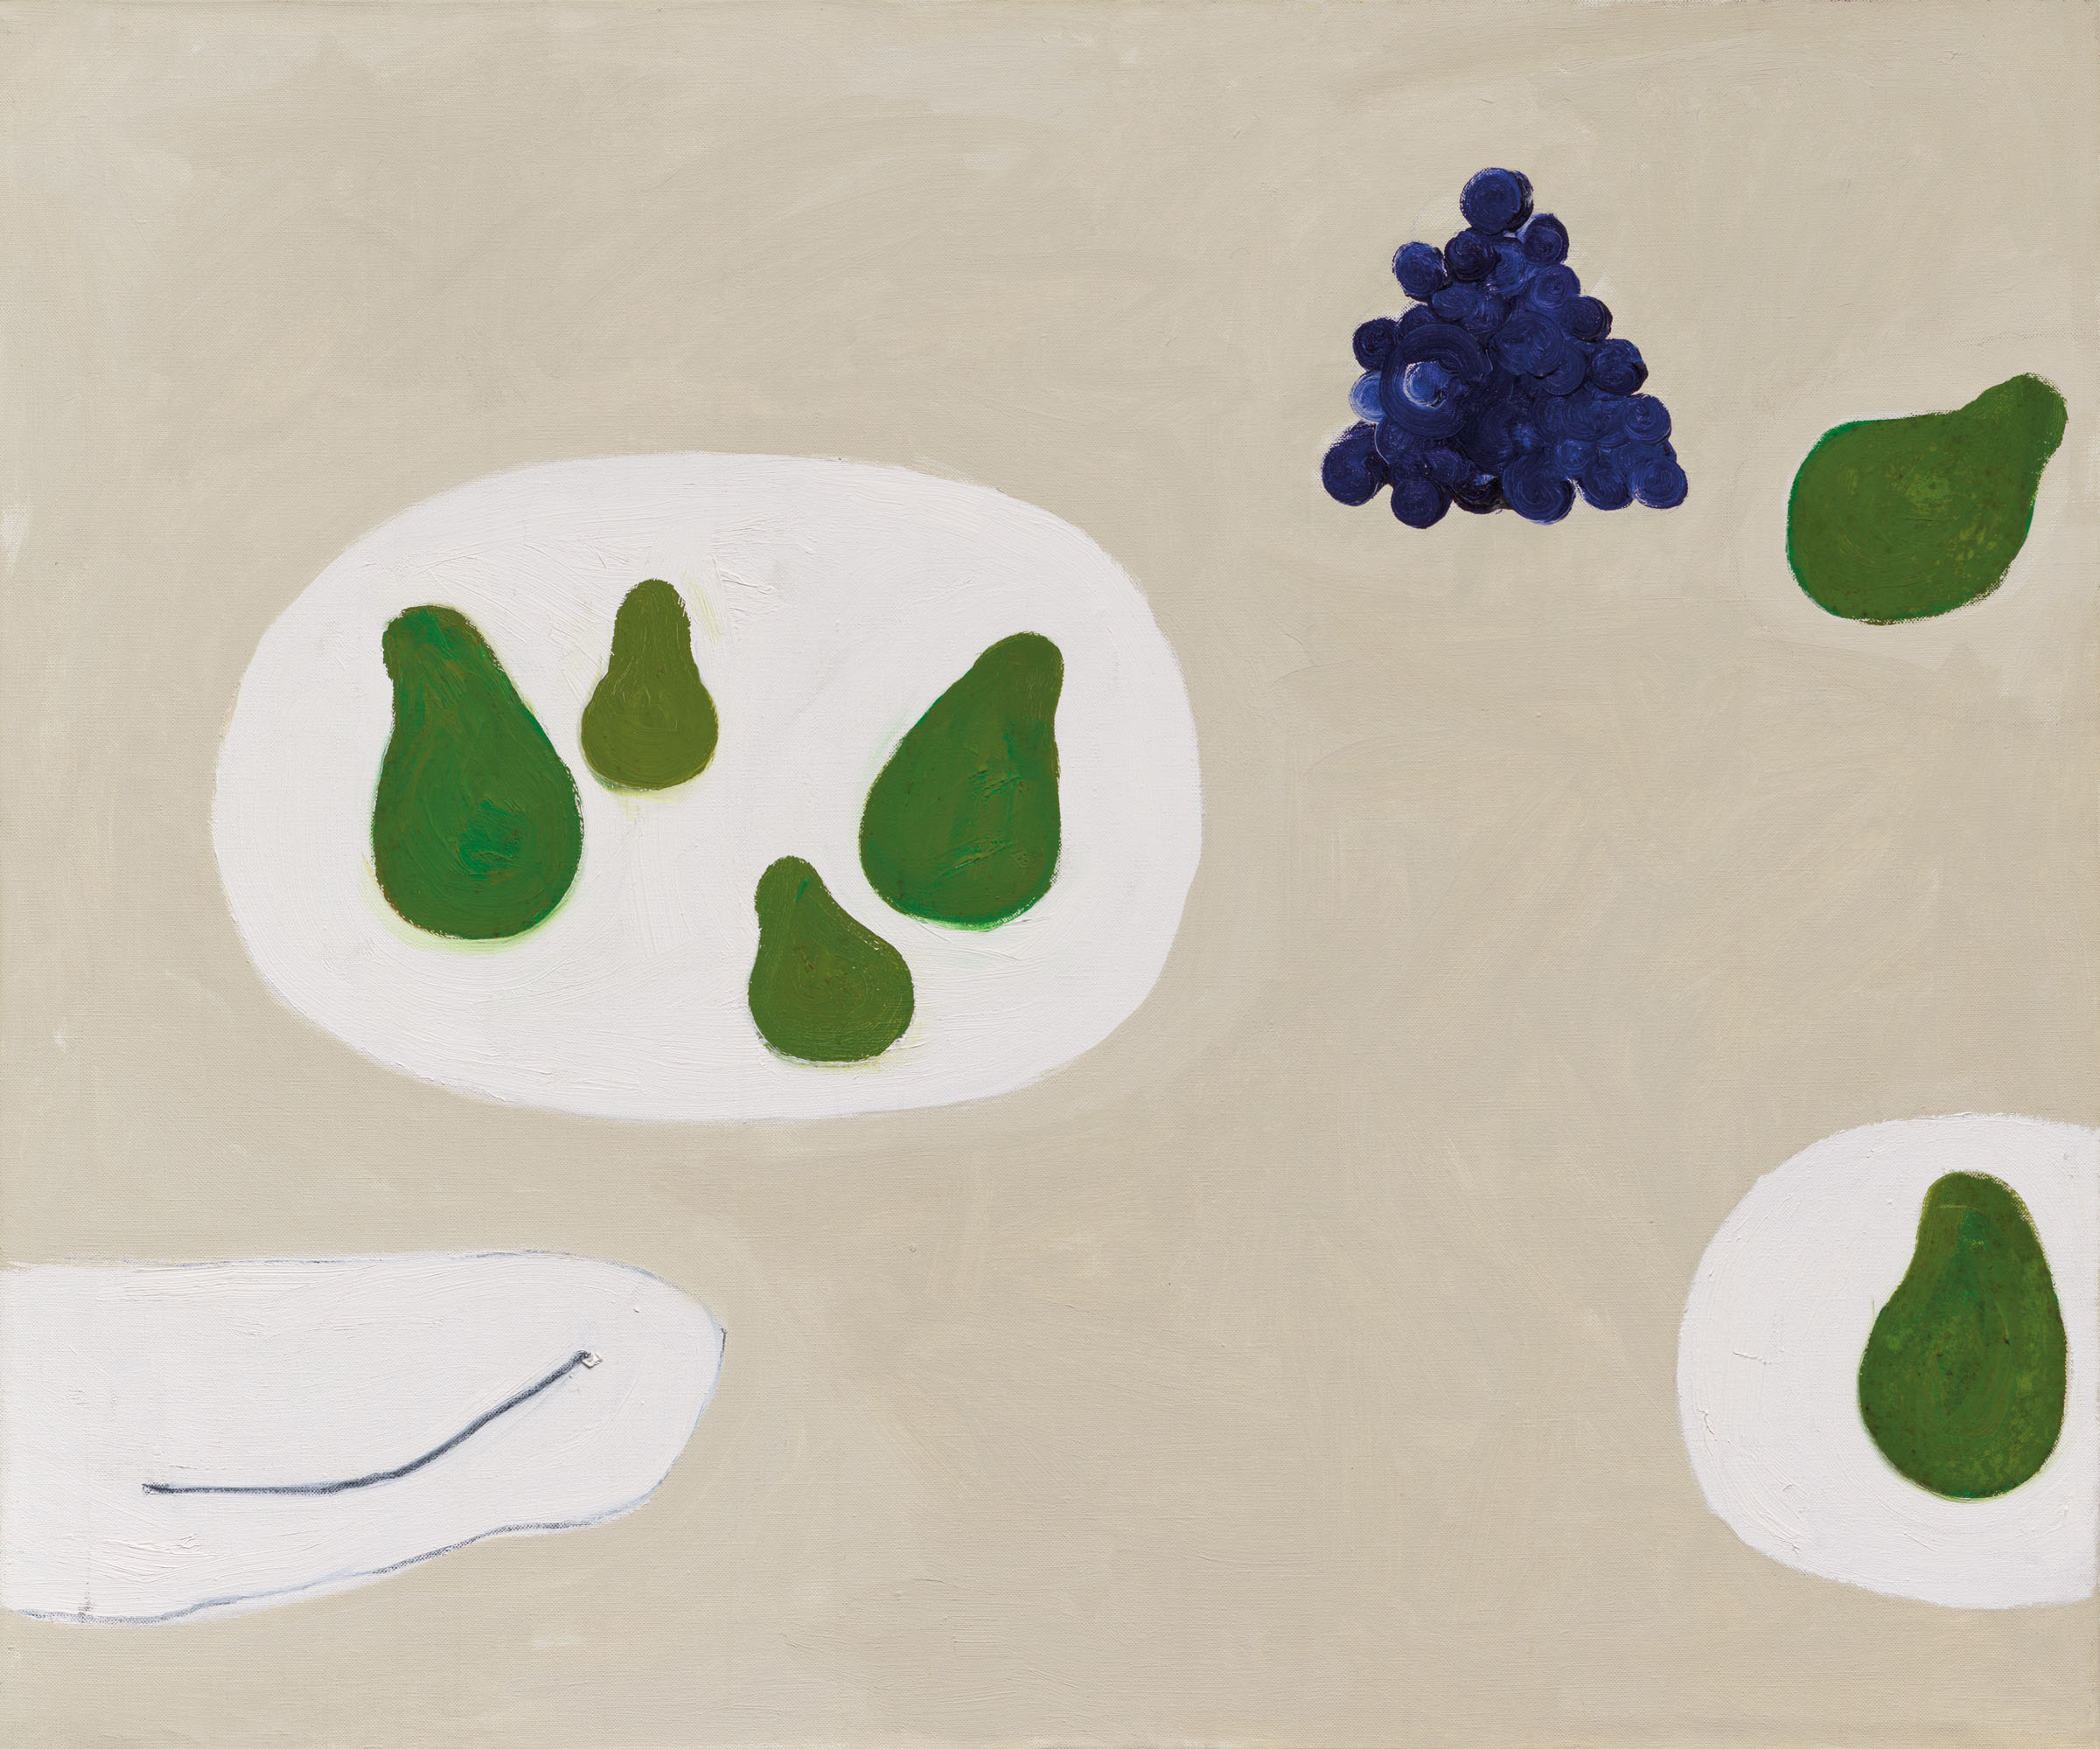 William Scott, R.A. (1913-1989),Six Pears and Grapes, 1974. Oil on canvas. 25 x 30 in (63.5 x 76.2 cm). Estimate £80,000-120,000. Offered inModern British Art Day Sale, 2 March at Christie's London